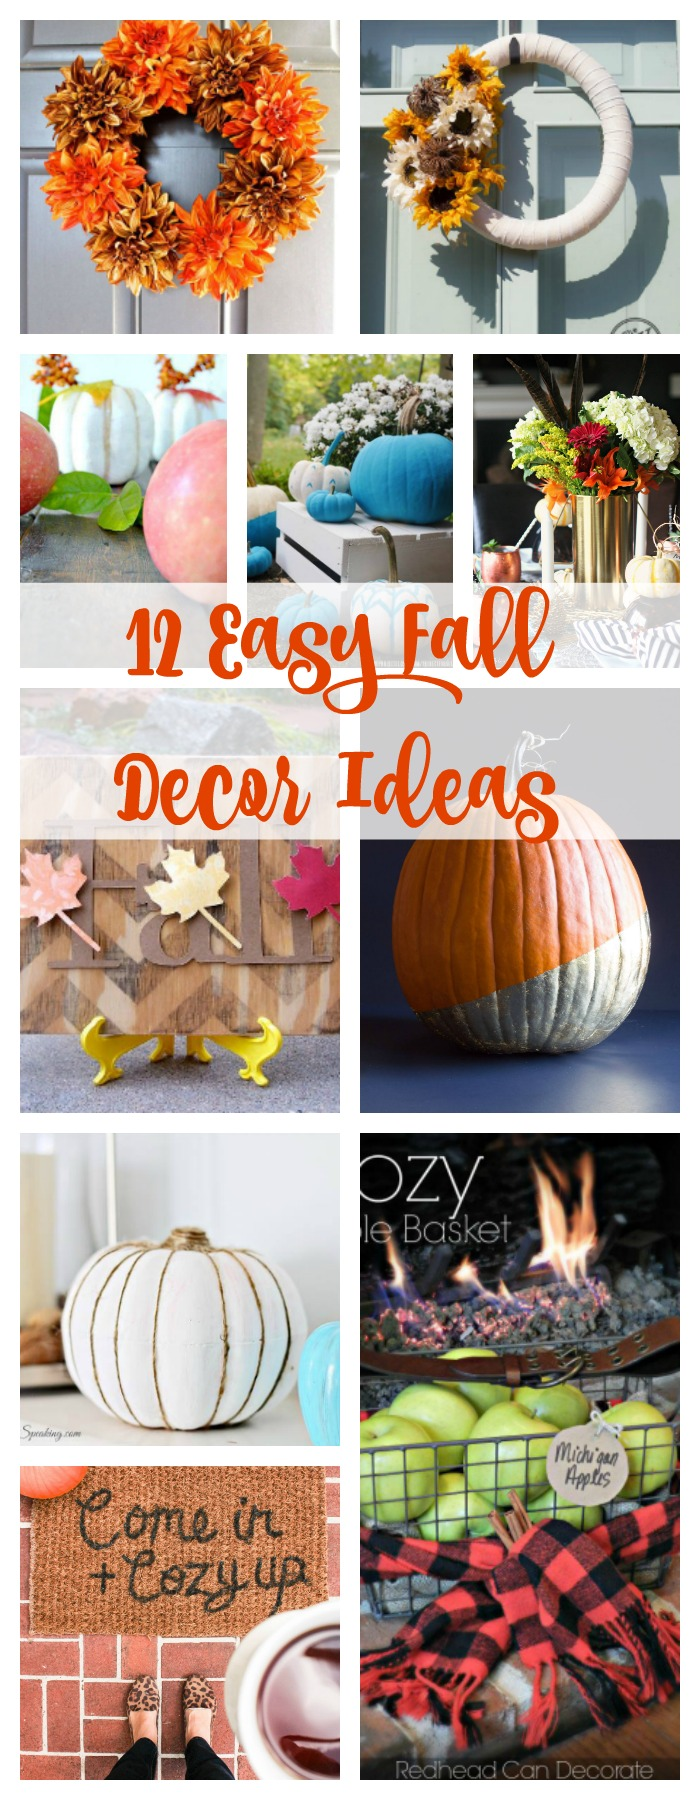 Easy fall decor ideas. Easy ideas for decorating your home for fall.